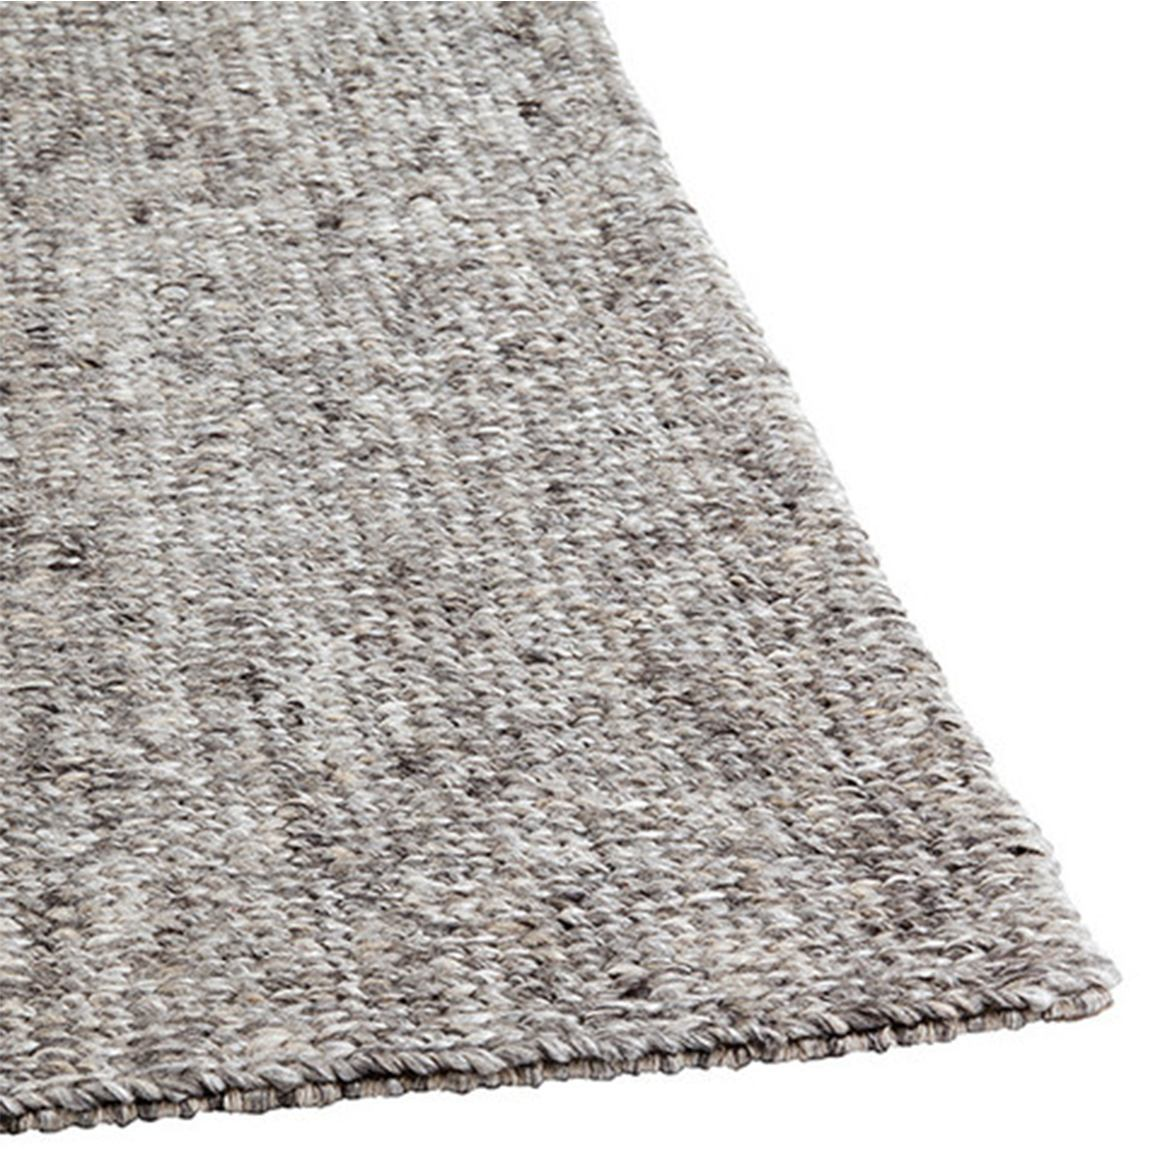 ARMADILLO SIERRA WEAVE RUG - Eclectic Cool  - 5